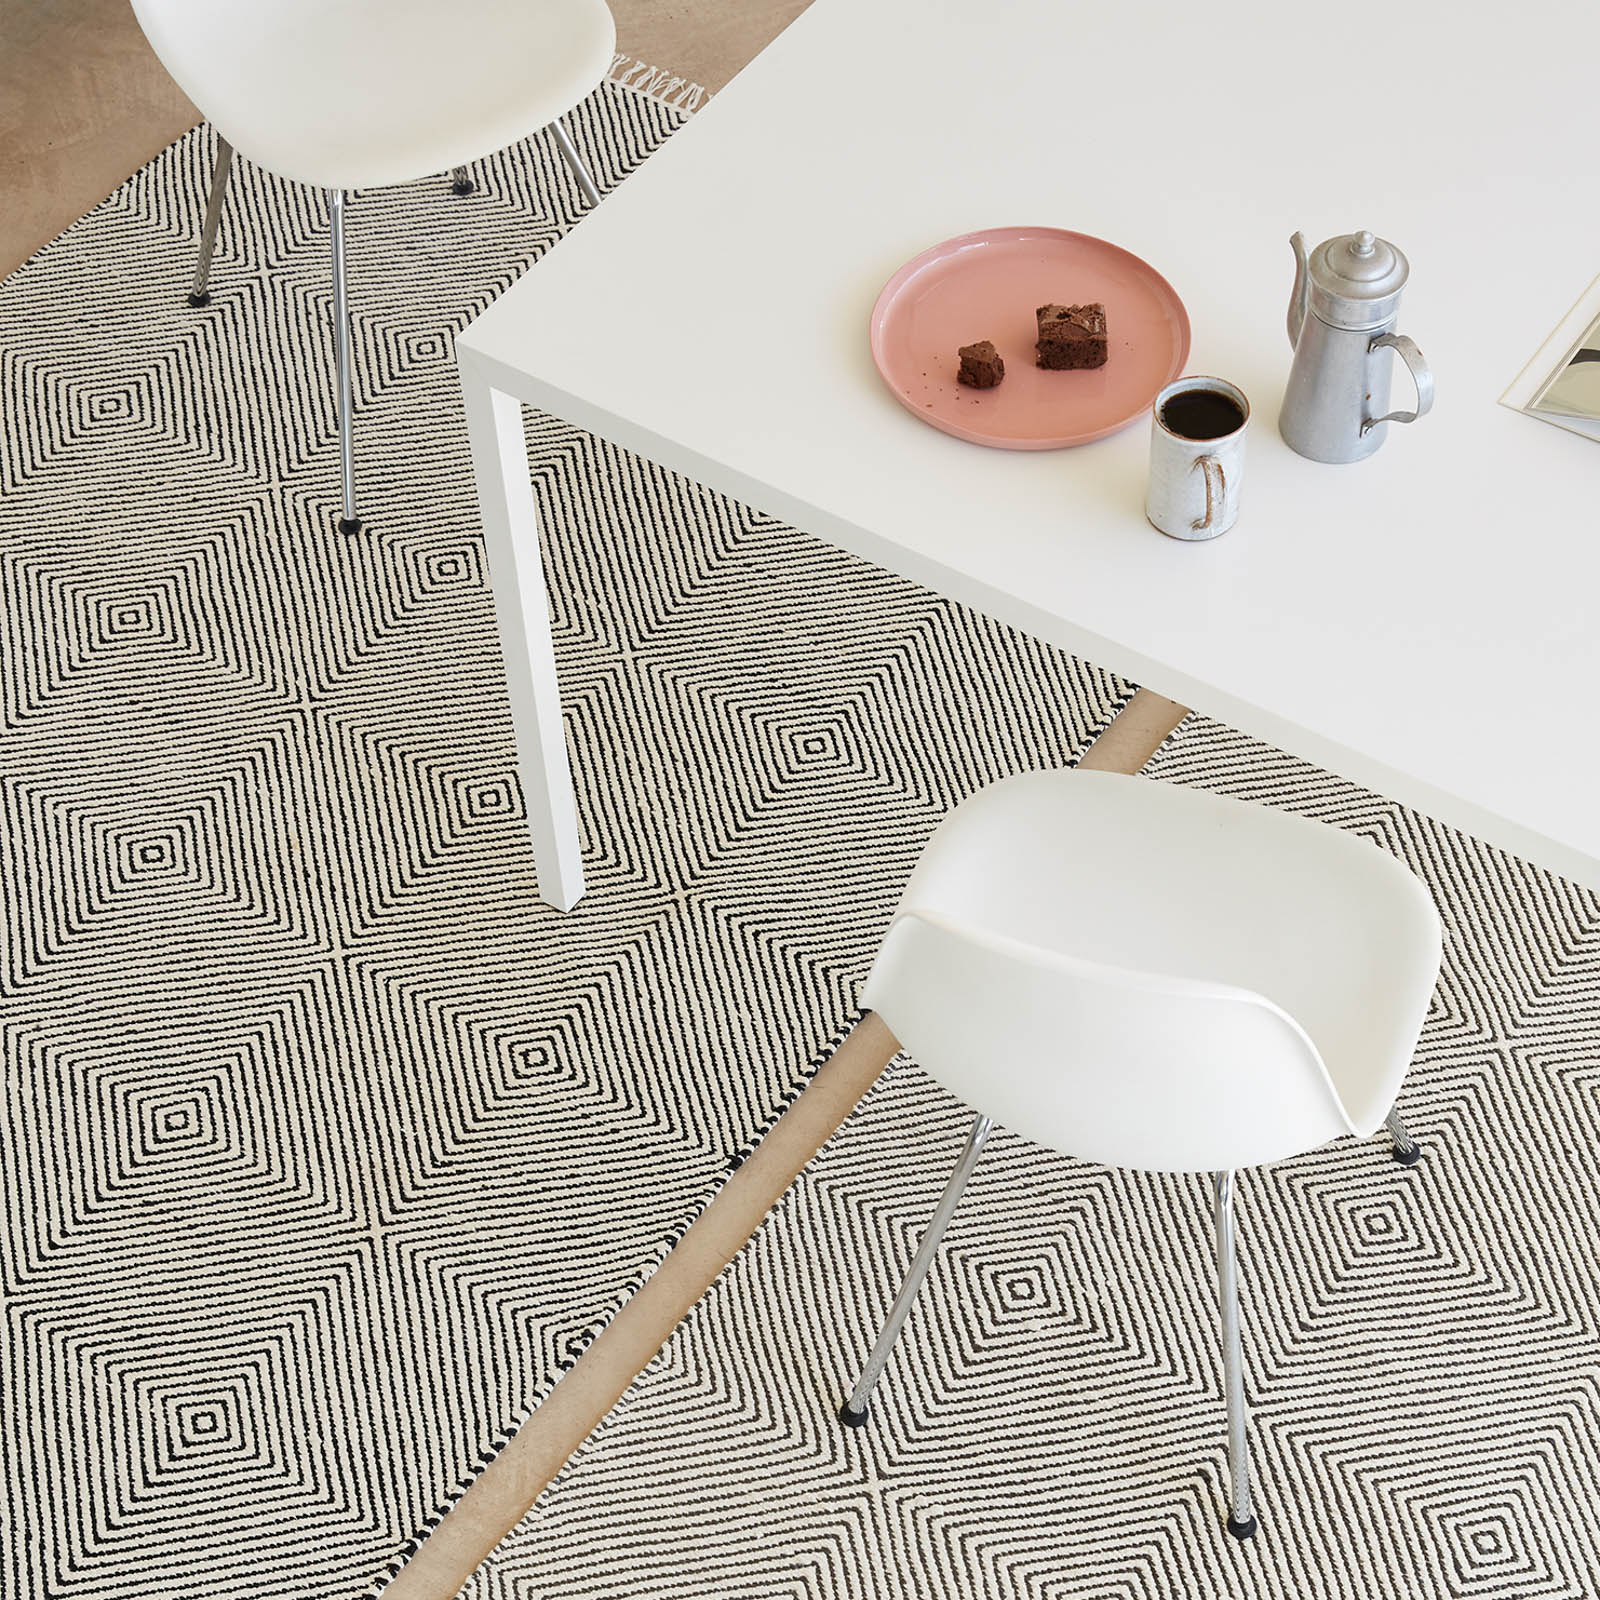 Muse Flatweave Rugs MUS01 in Black and Ivory